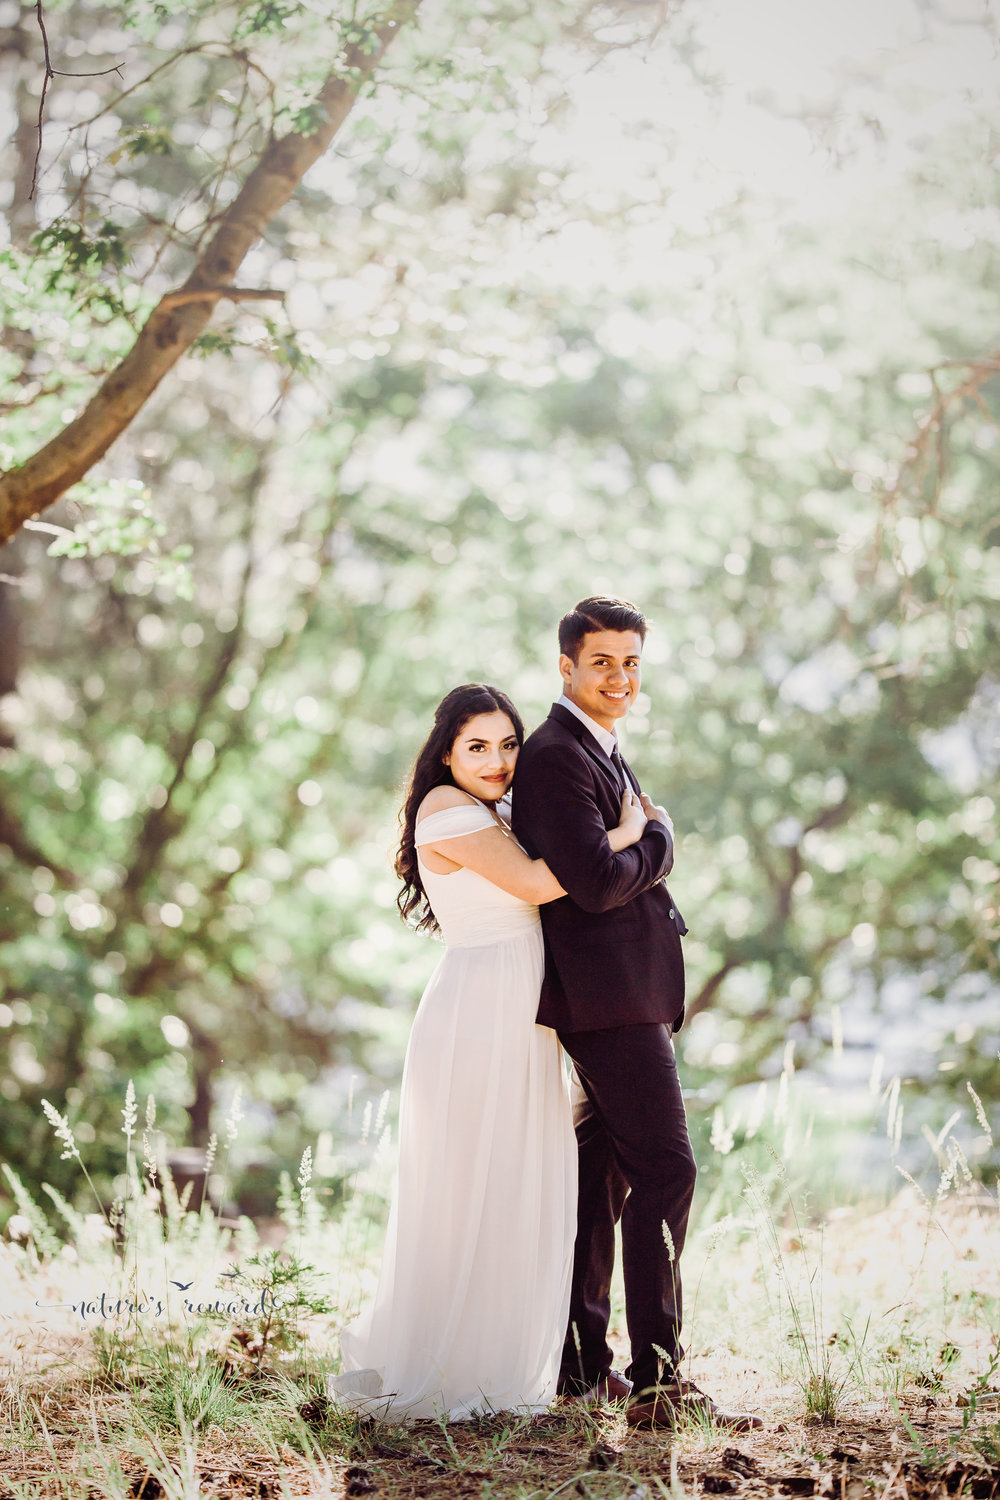 Very cute pose of bride and groom in this lovely portrait By Nature's Reward Photography